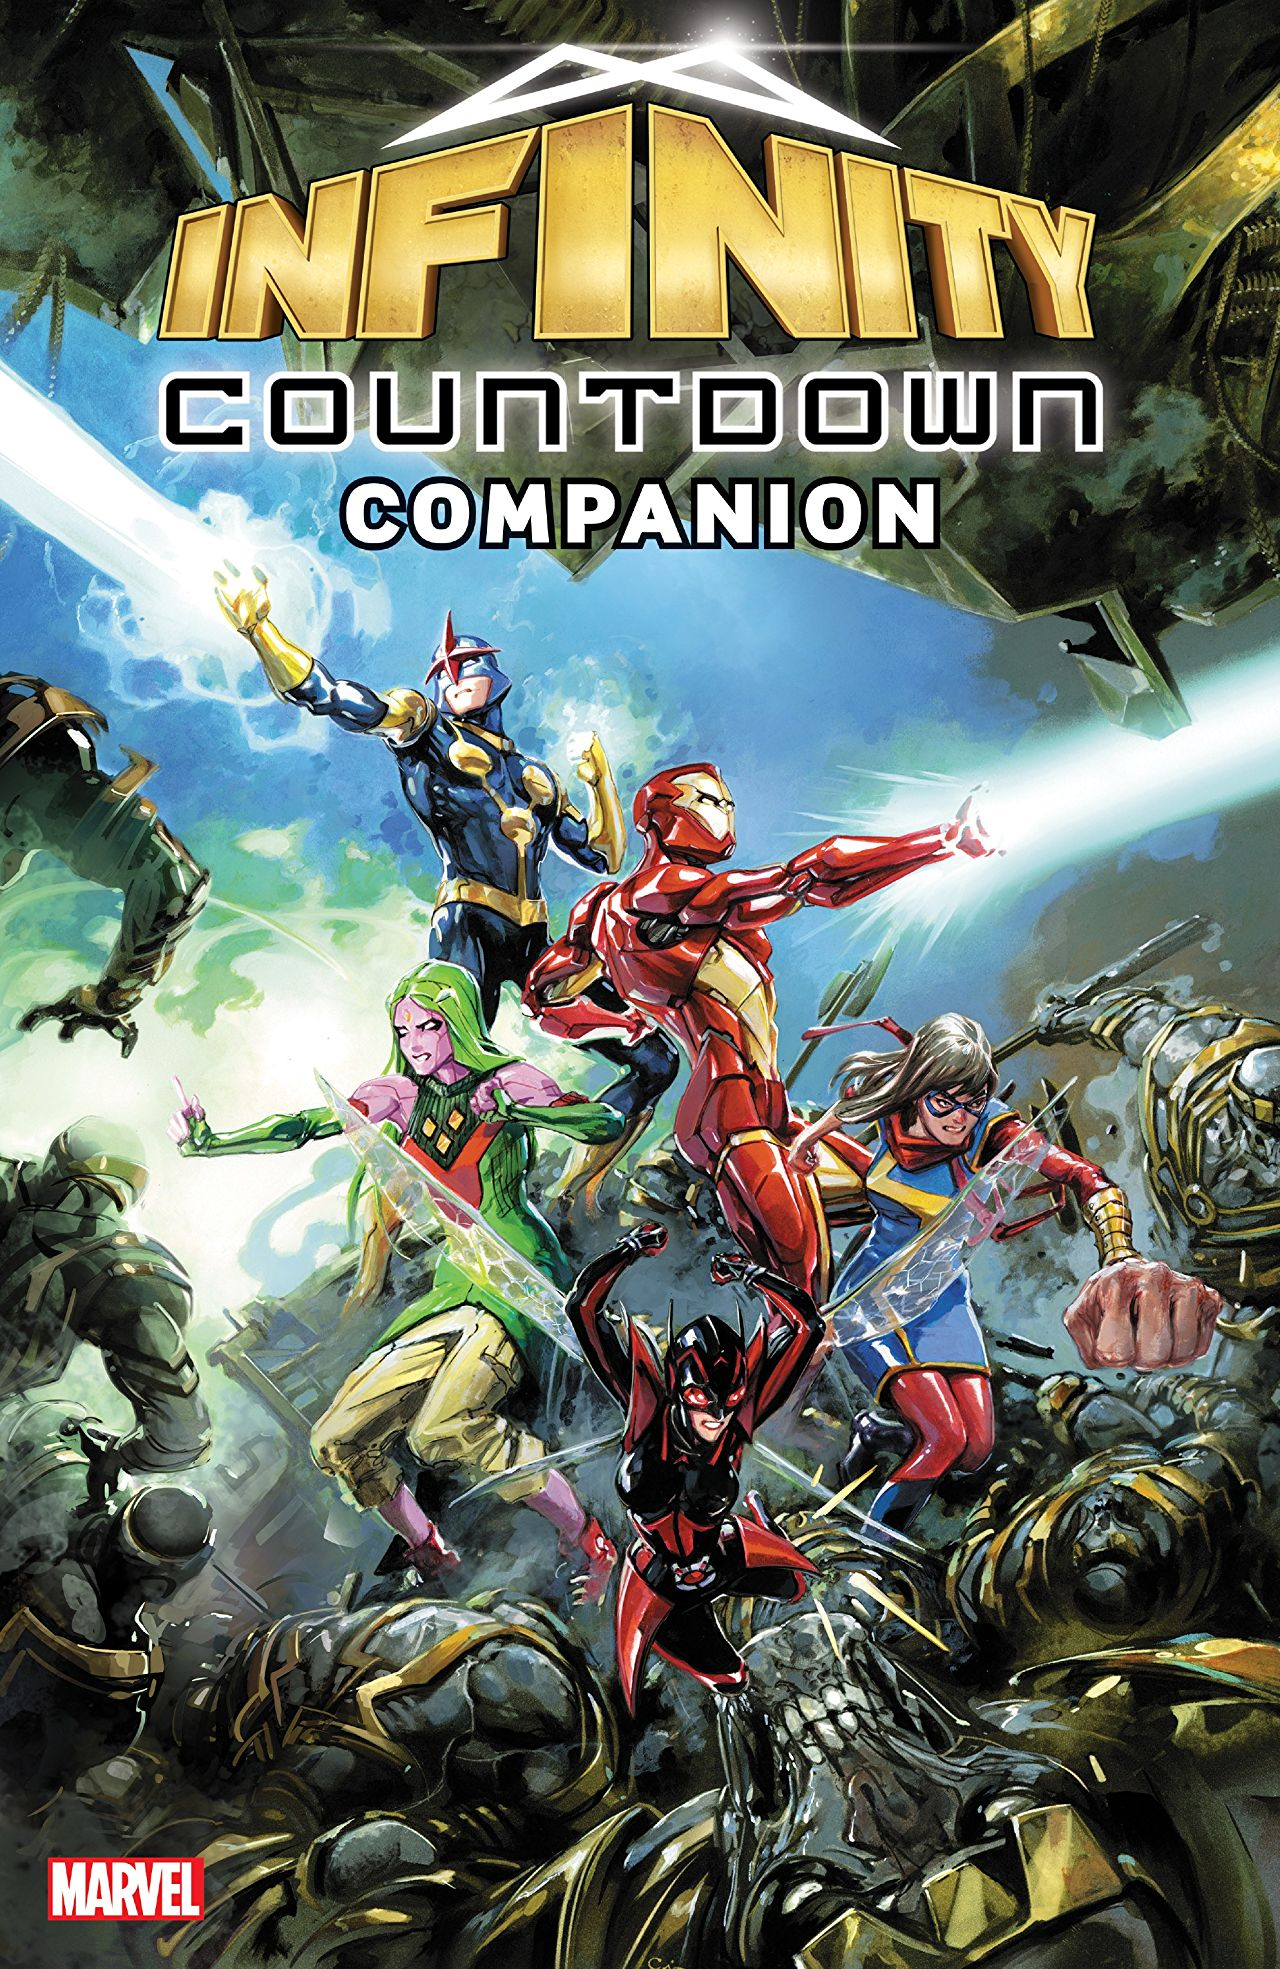 Infinity Countdown Companion Review